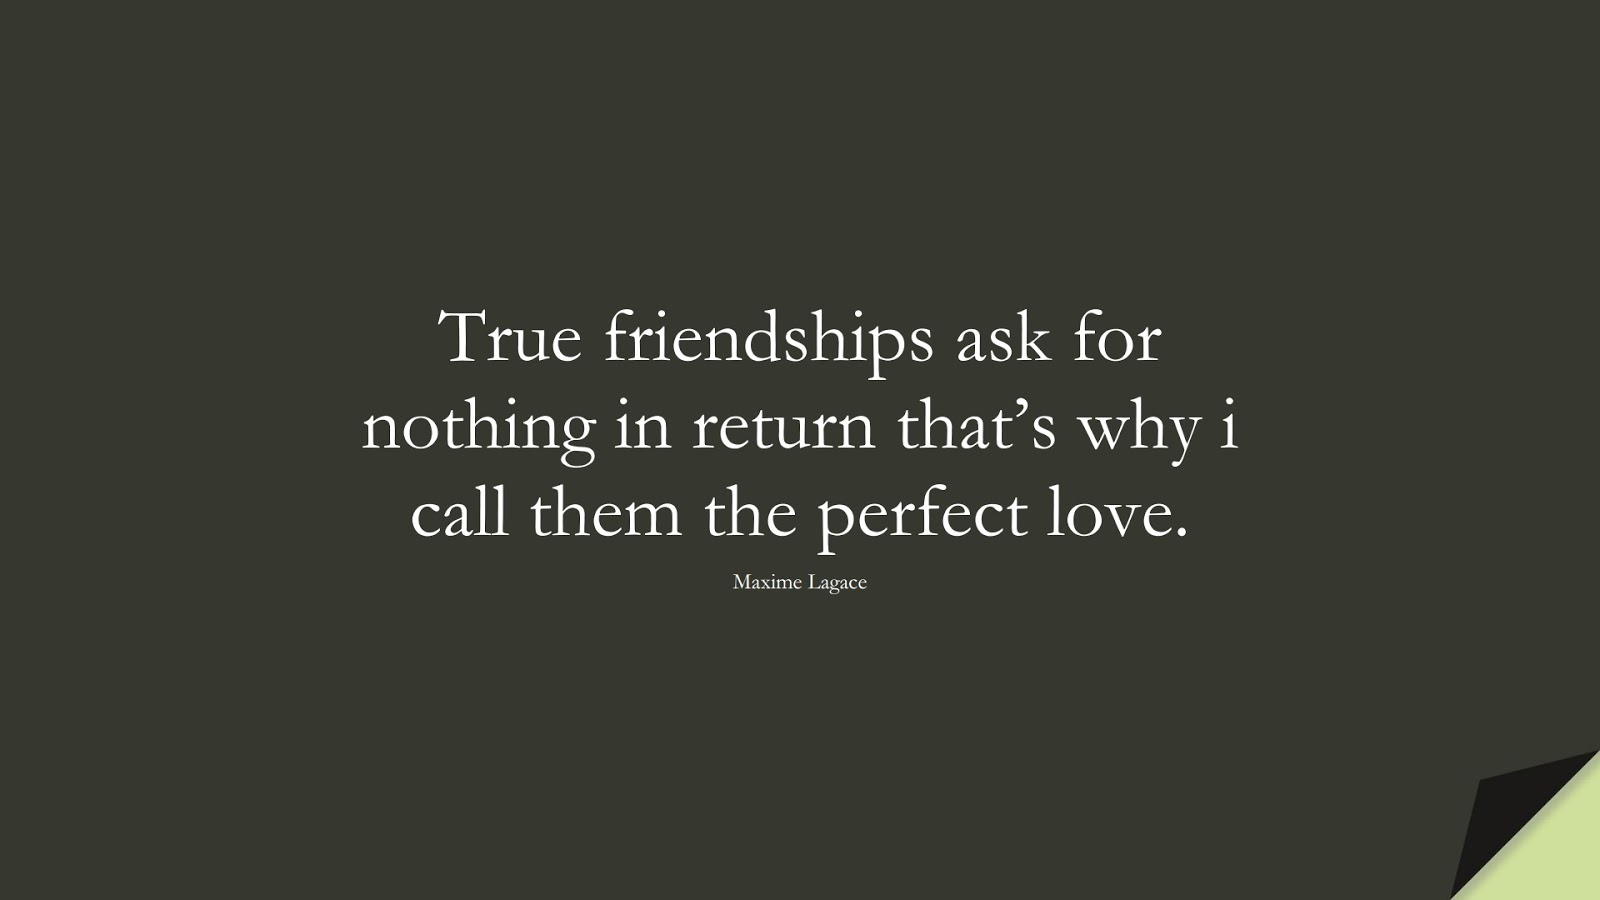 True friendships ask for nothing in return that's why i call them the perfect love. (Maxime Lagace);  #LoveQuotes